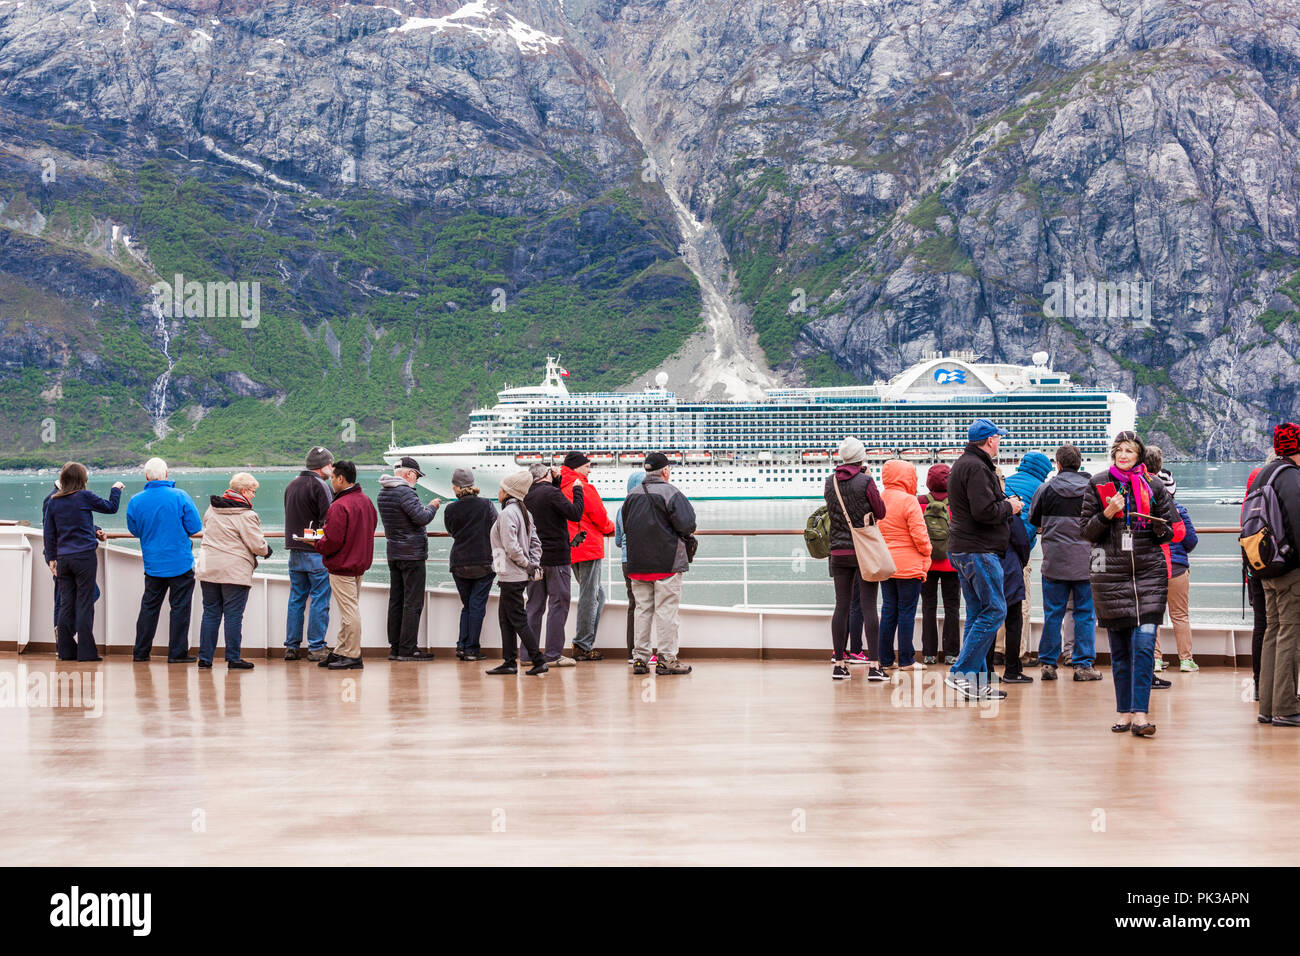 Passengers on the Holland America Line Cruises 'Nieuw Amsterdam' watching the passing by of Princess Cruises 'Ruby Princess' in the Tarr Inlet of Glac - Stock Image